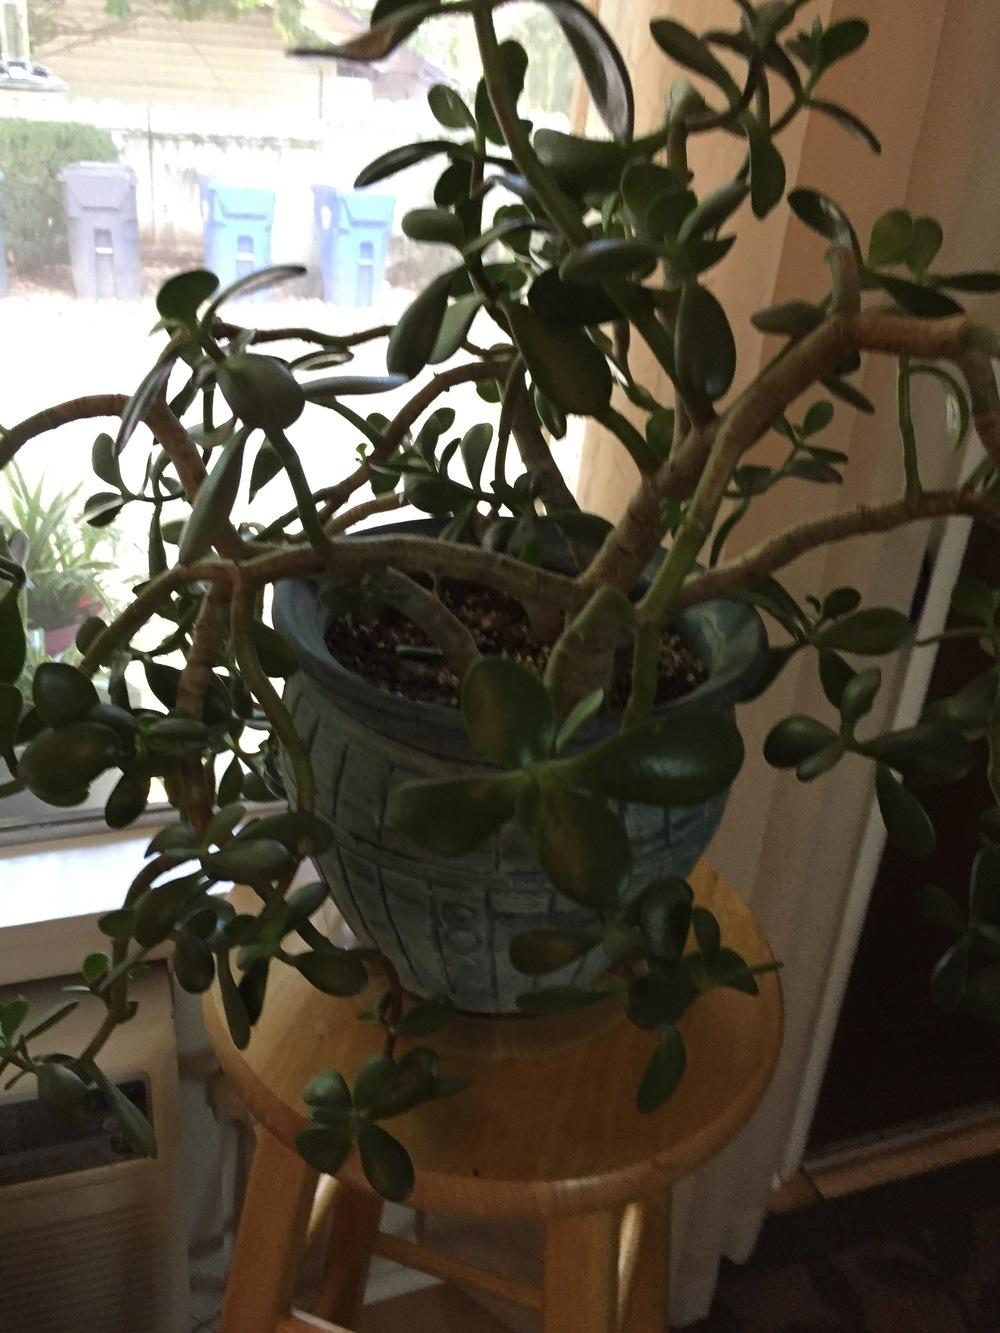 Communication on this topic: How to Prune a Jade Plant, how-to-prune-a-jade-plant/